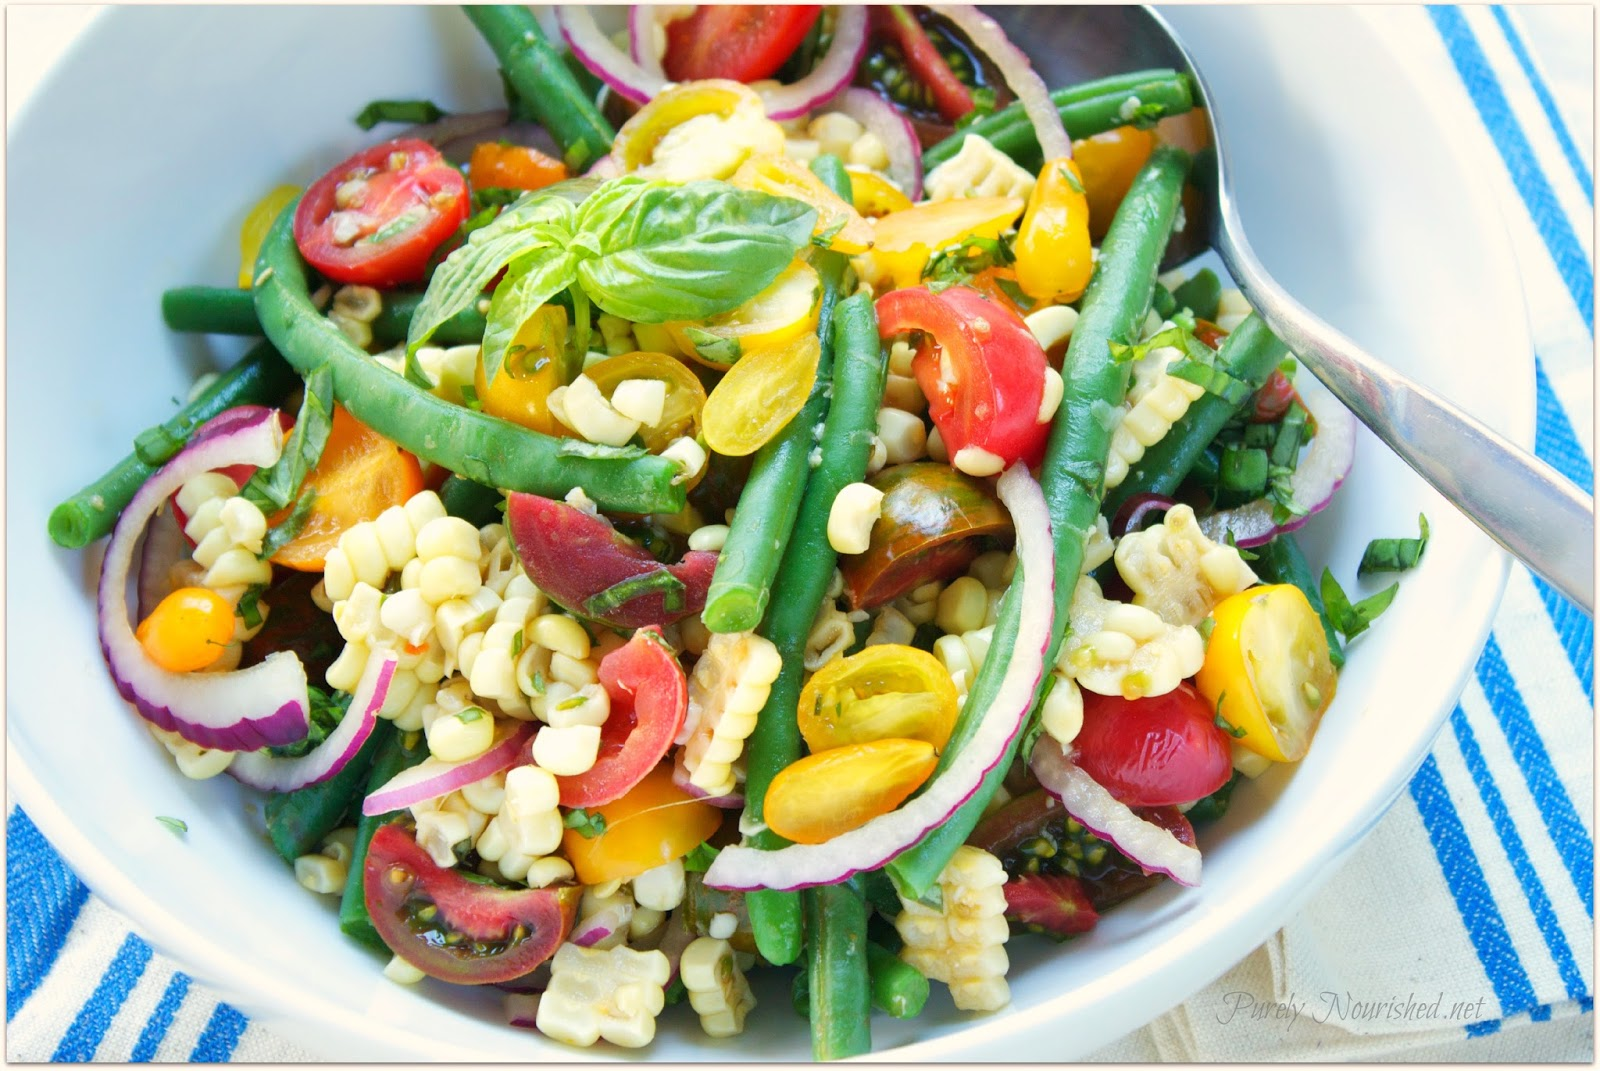 Purely Nourished: Corn, Tomato and Green Bean Salad